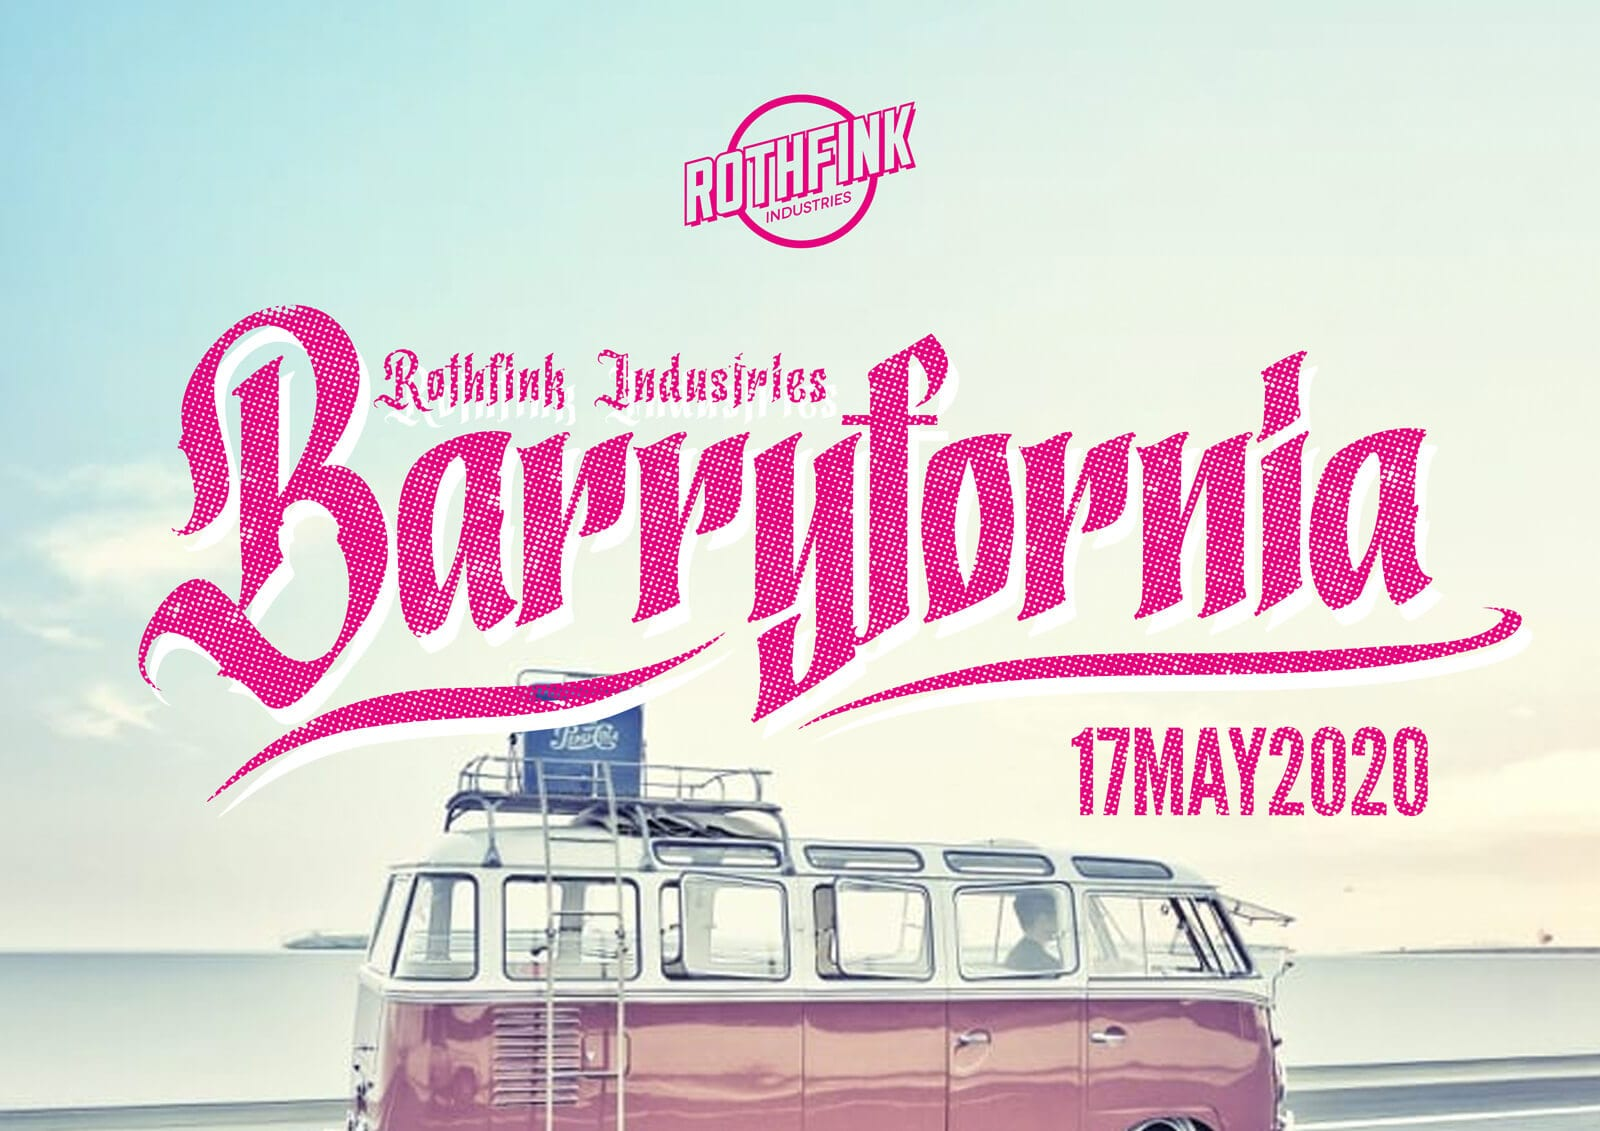 Rothfink Industries presents Barryfornia – an aircooled event at Barry Island – 17 May 2020